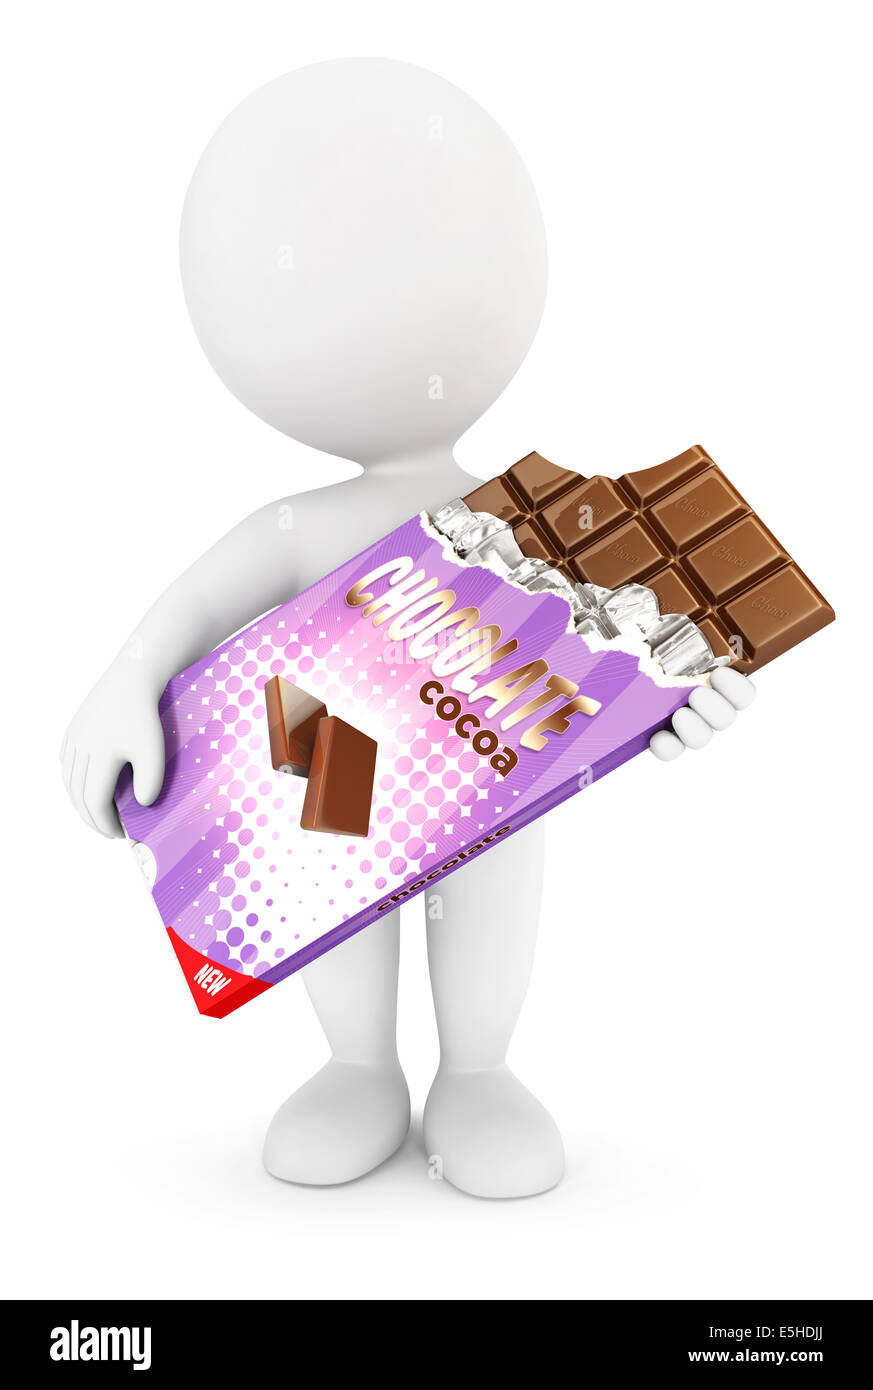 3d white people bar of chocolate, isolated white background, 3d image Stock Photo